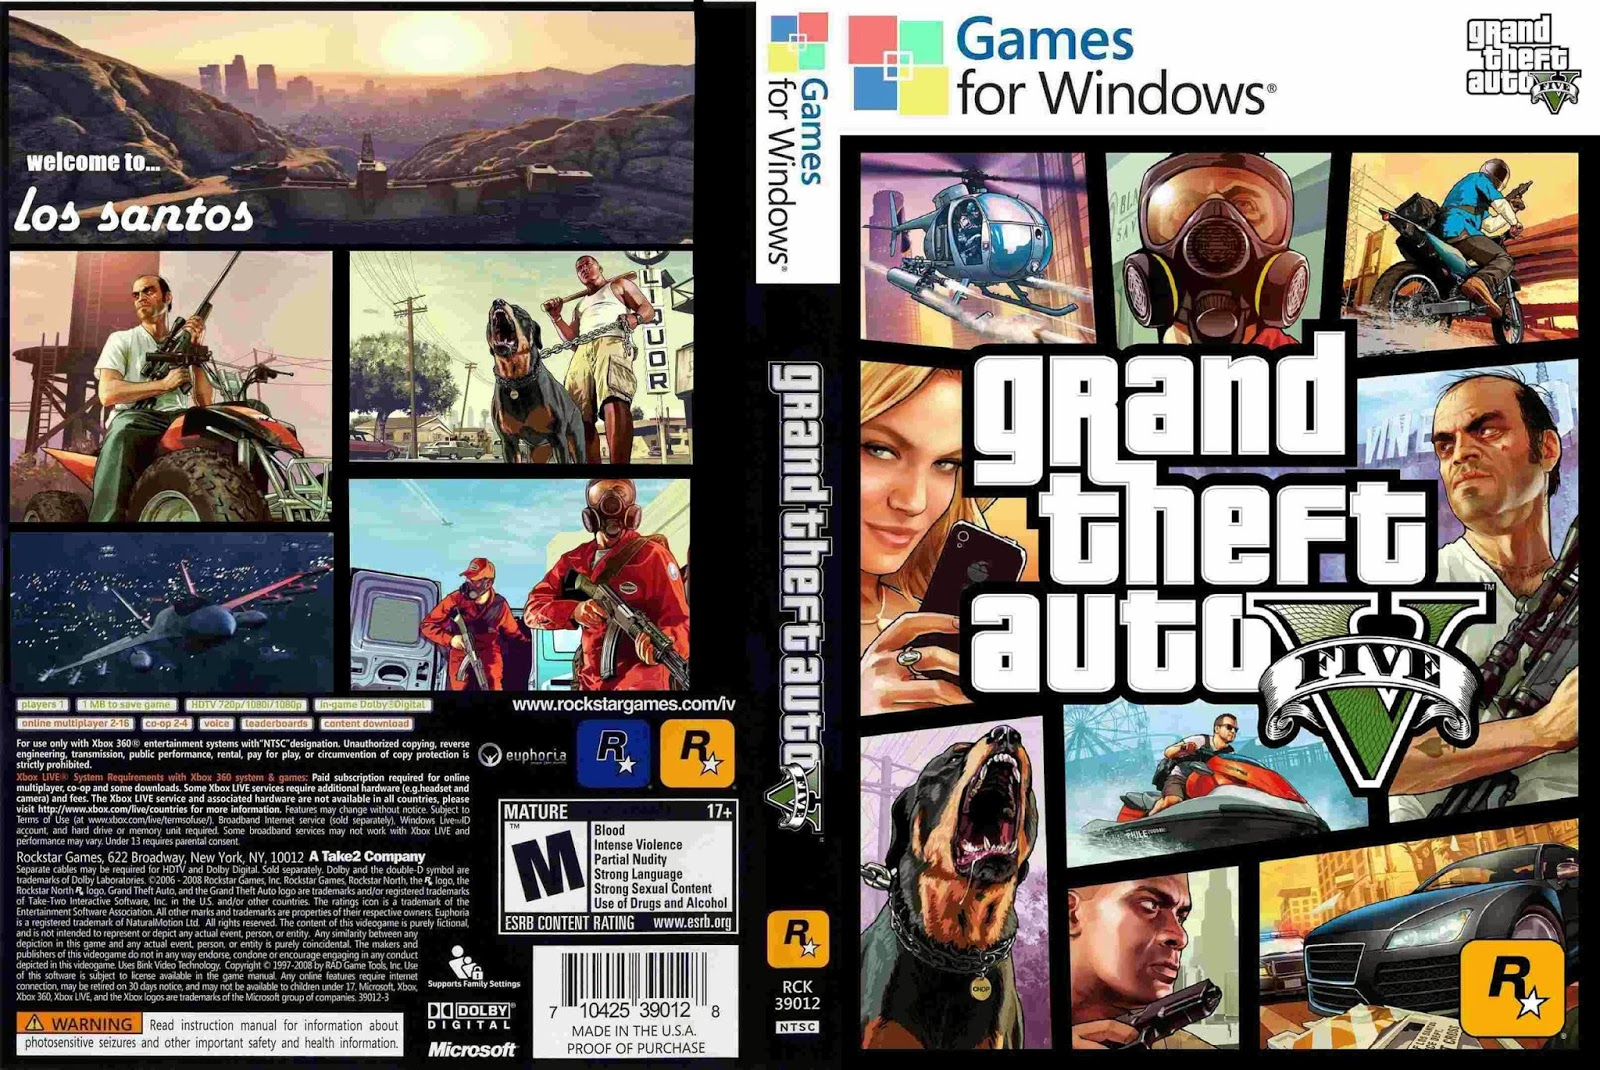 download gta 5 grand theft auto full game for free keygen